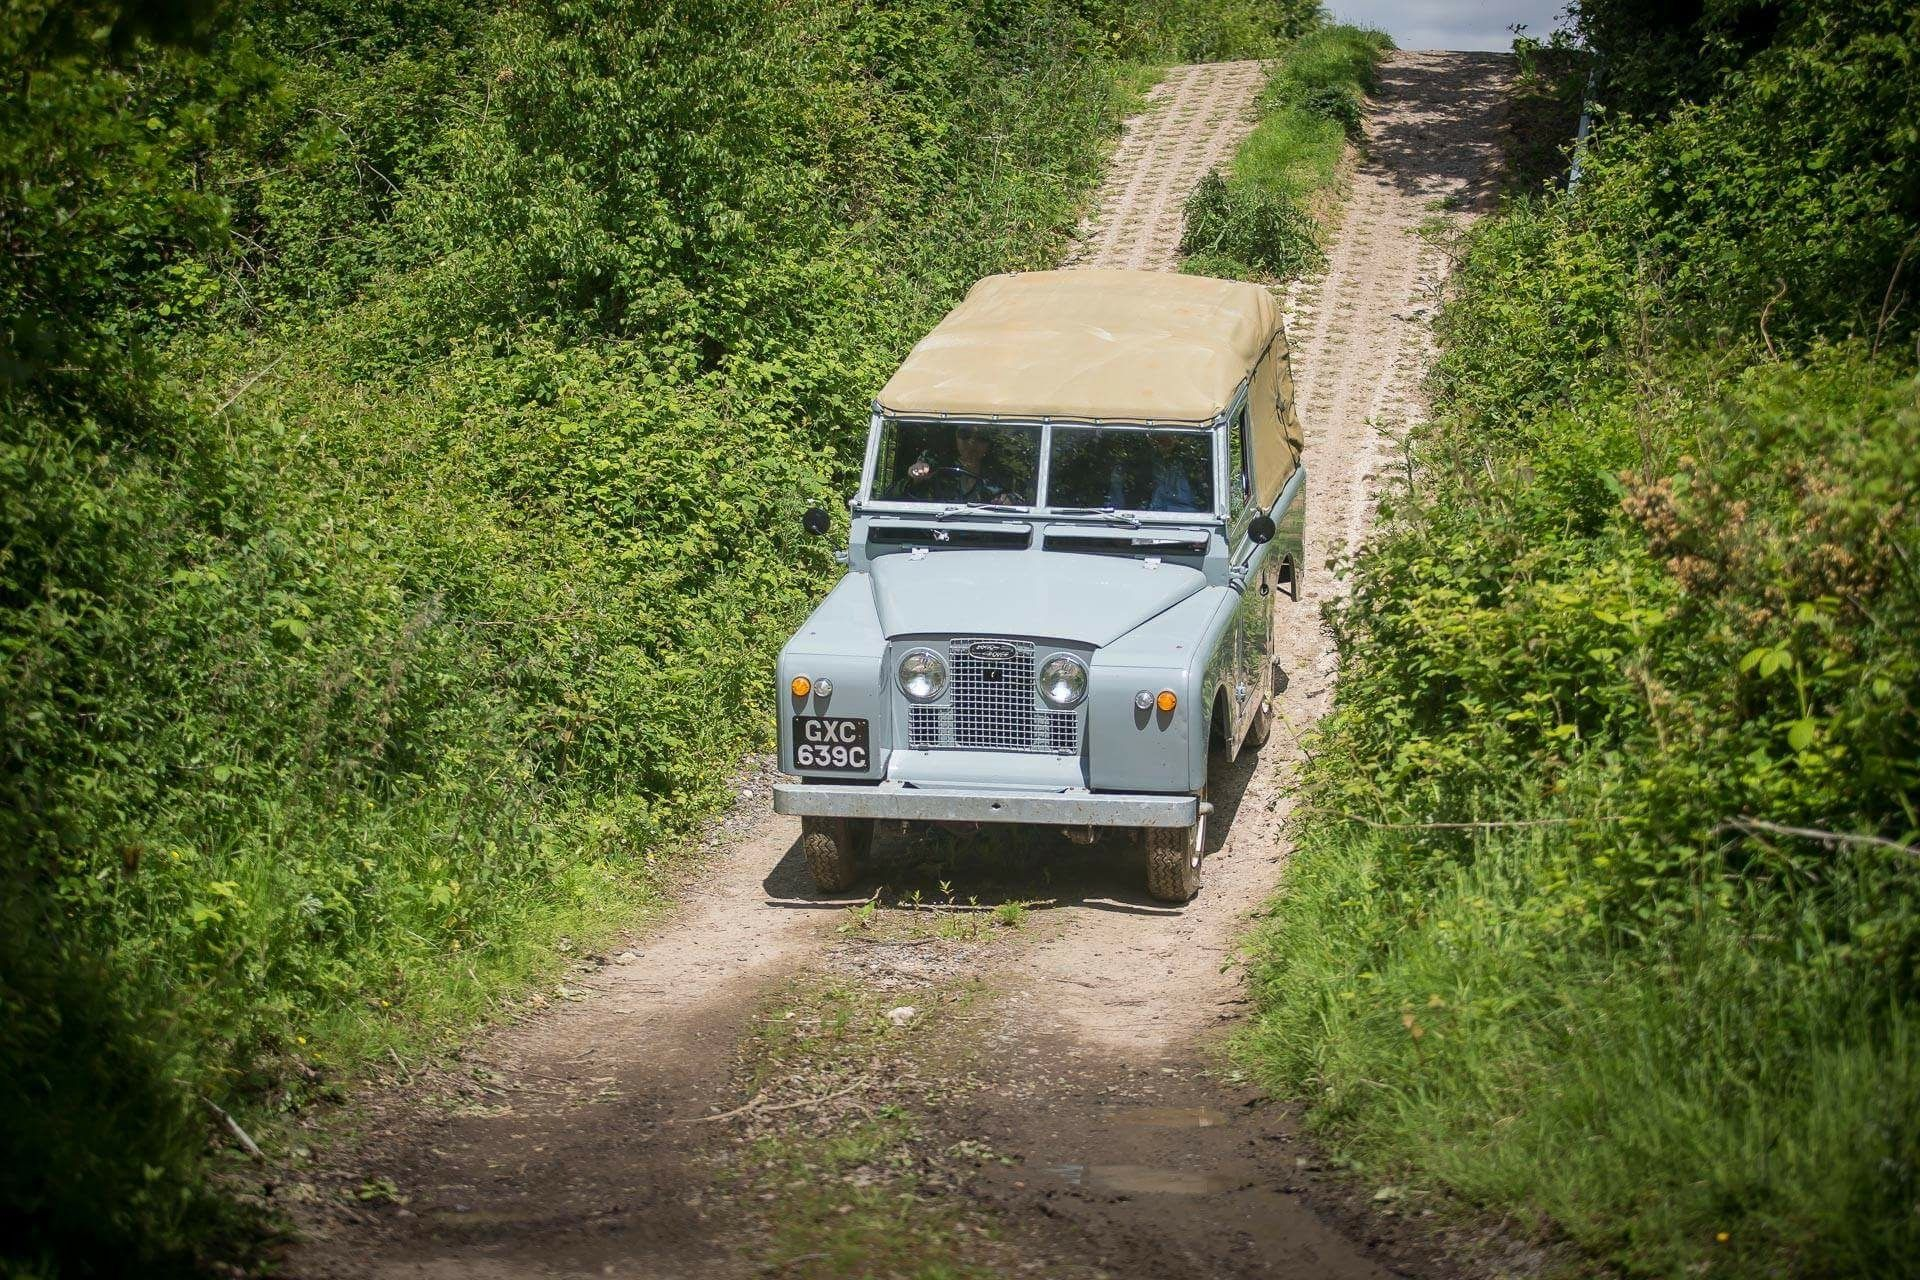 Land Rover series 2 test course